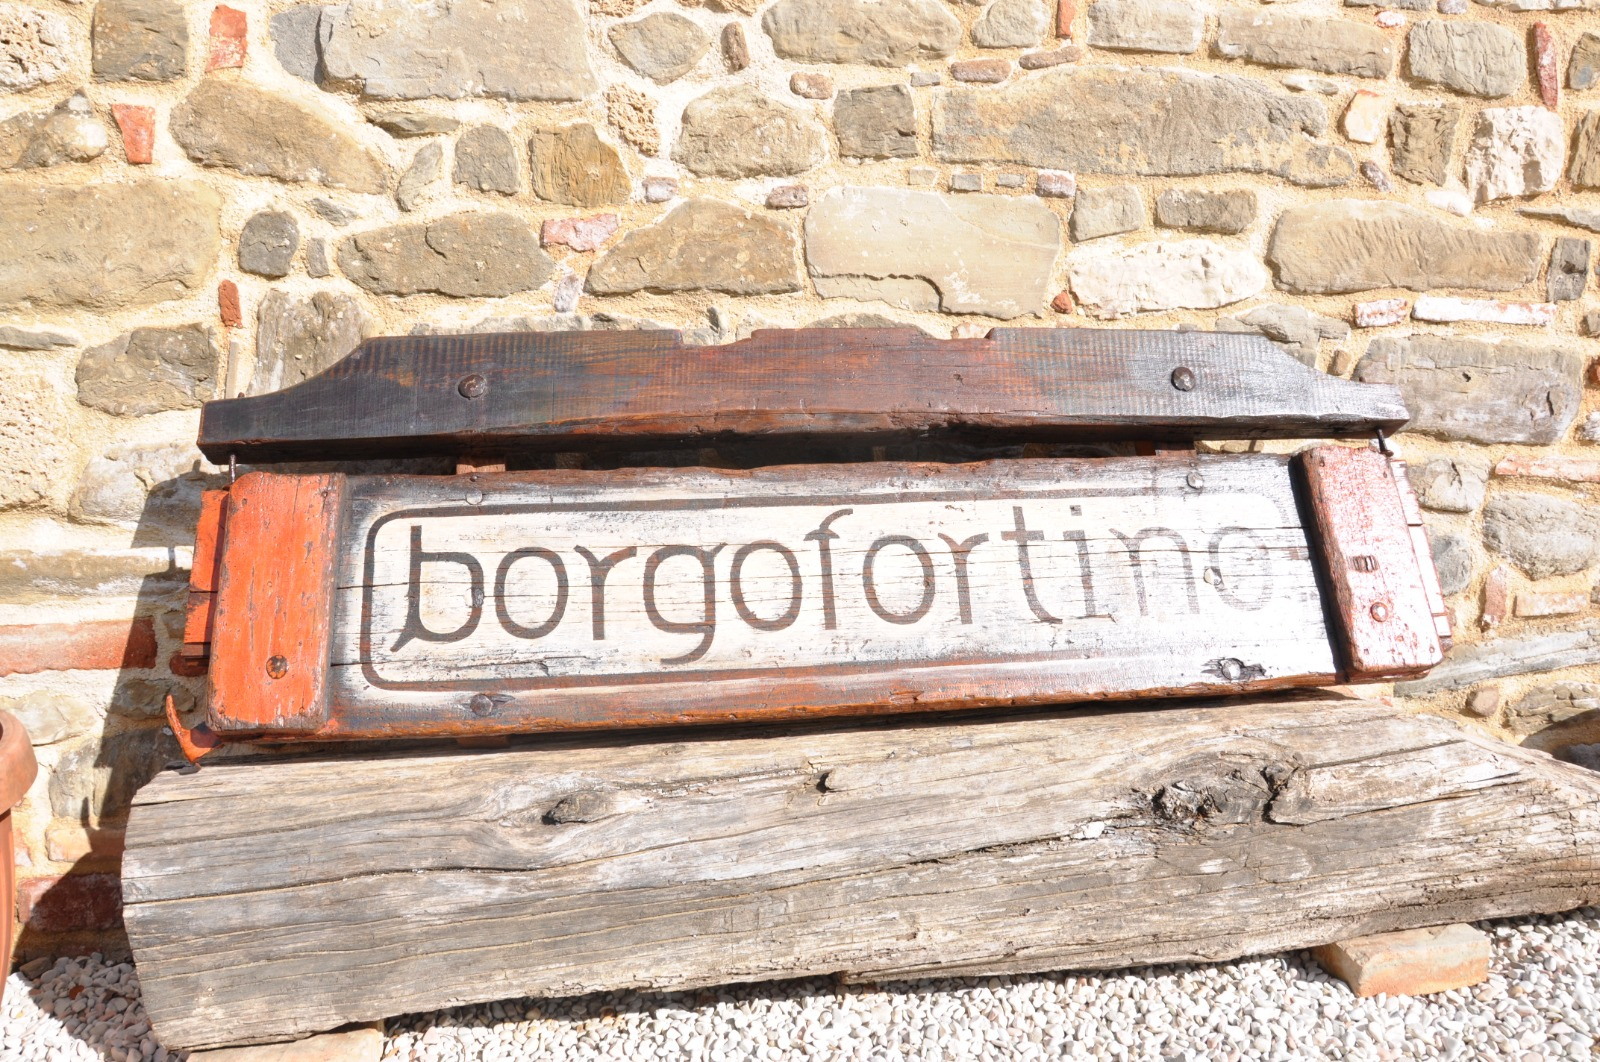 Borgofortino